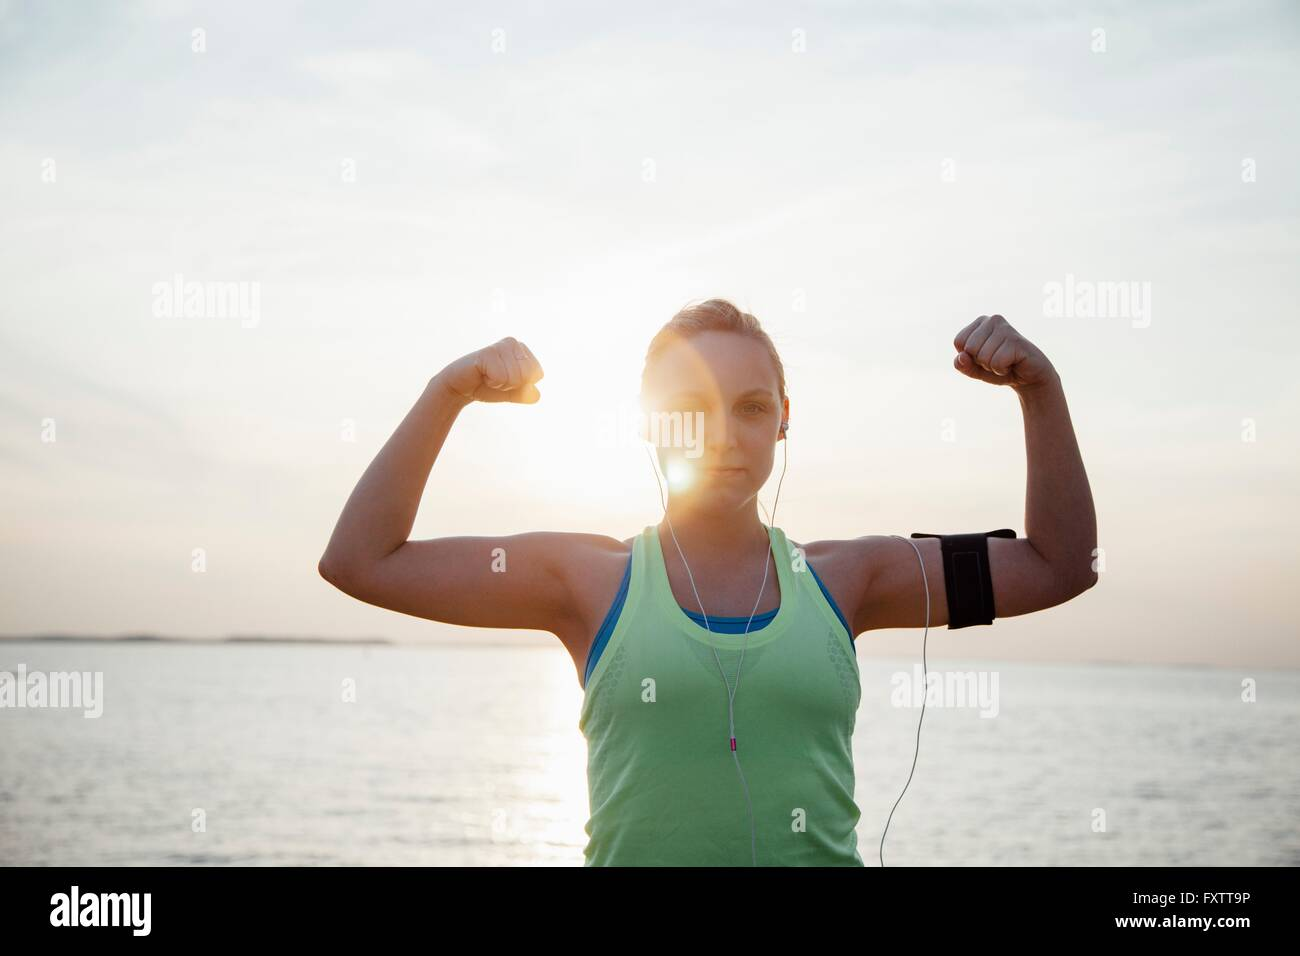 Woman wearing activity tracker, arms raised flexing muscles looking at camera - Stock Image